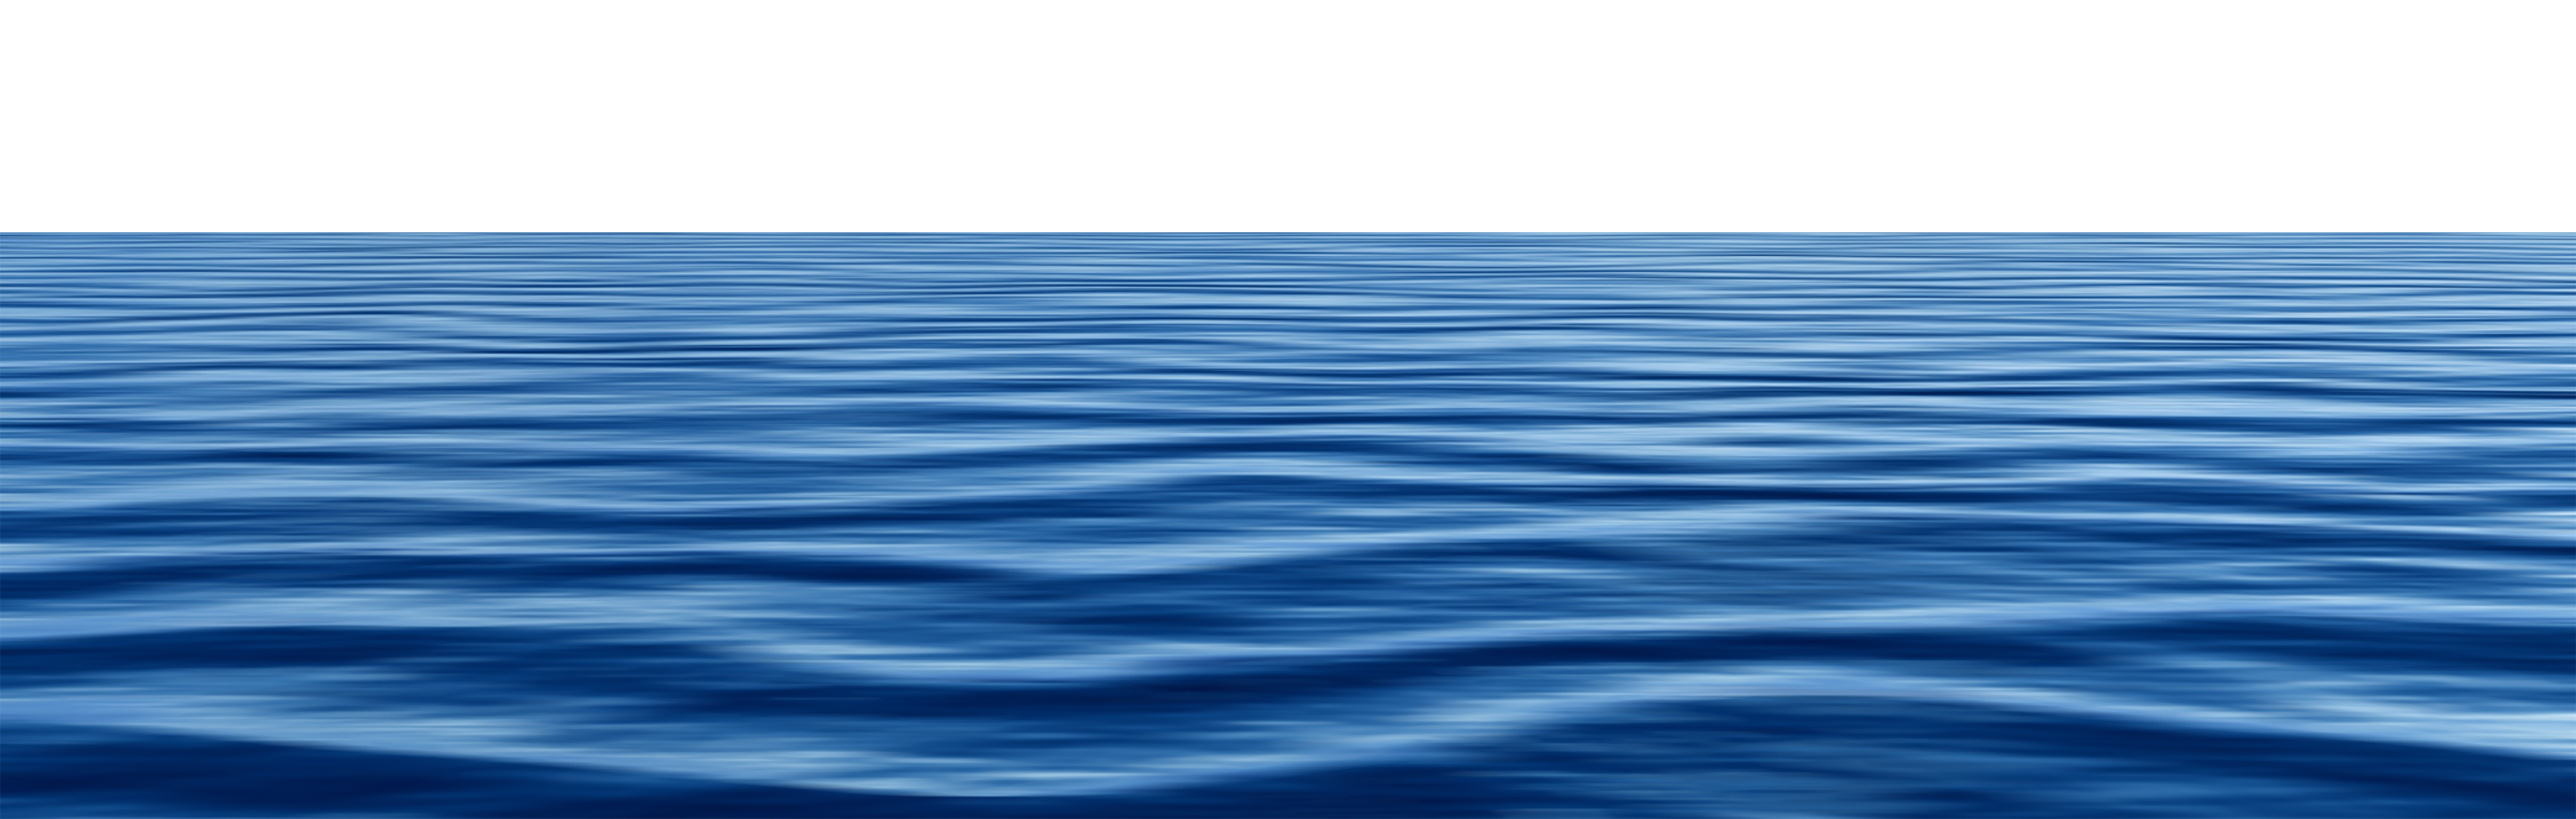 Blue Sea Ground Png Clipart Picture Blue Background Images Blue Background Wallpapers Free Texture Backgrounds